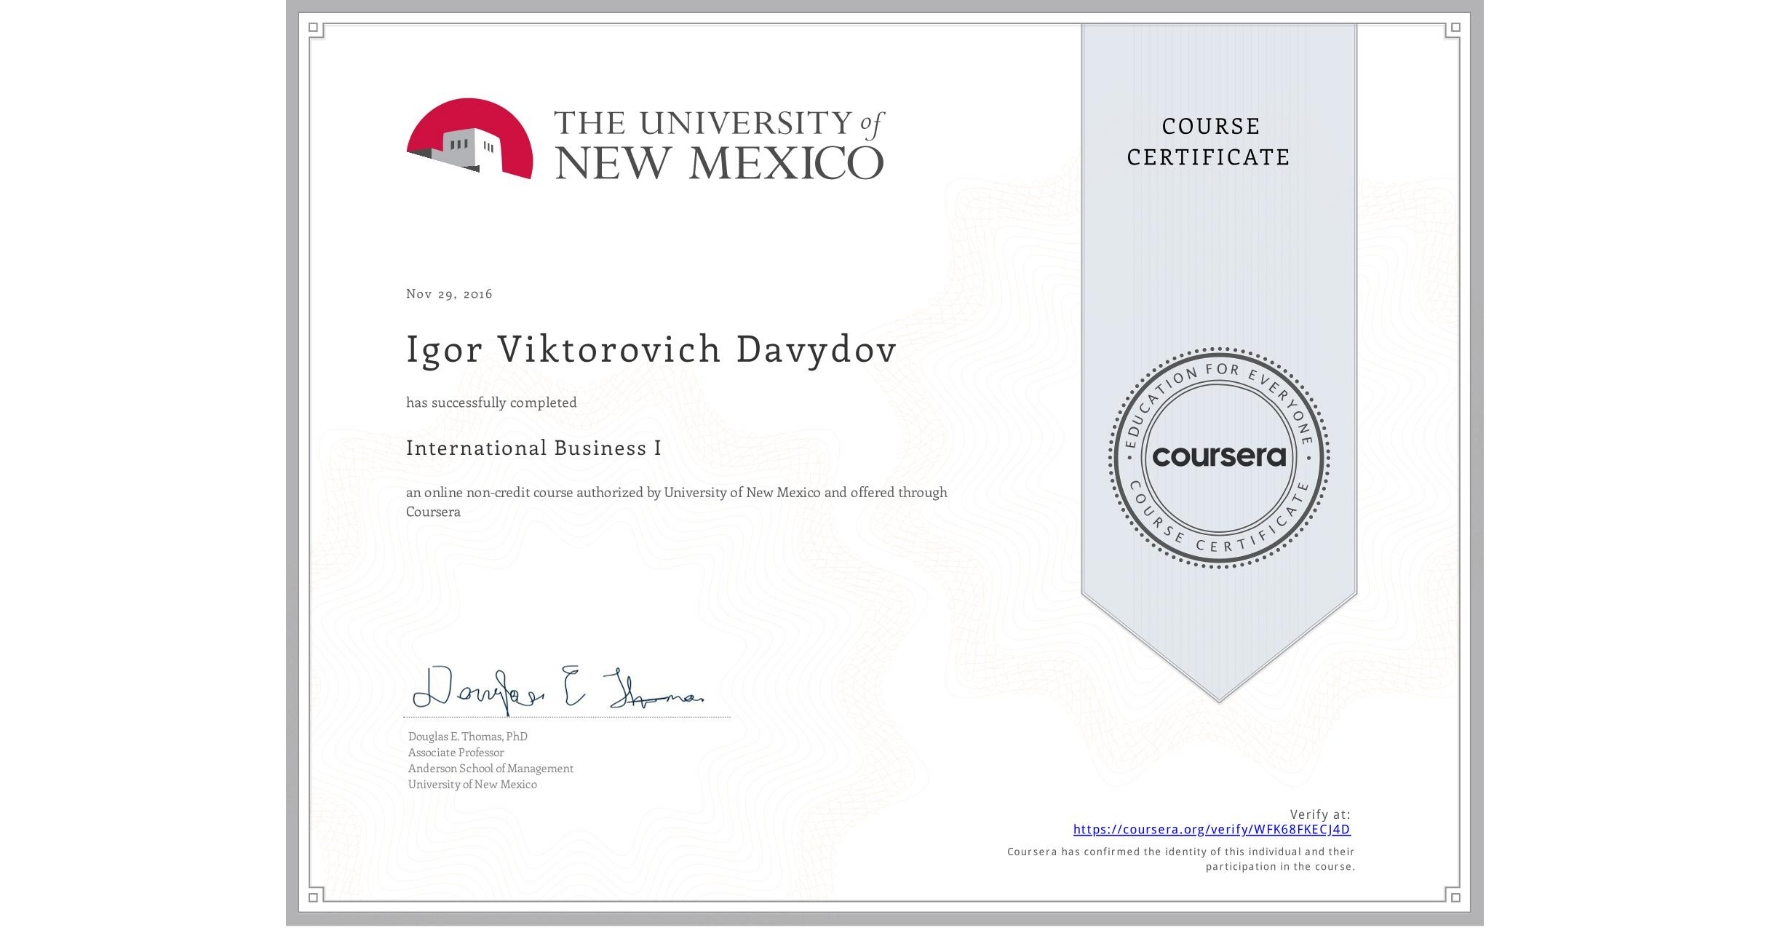 View certificate for Igor Viktorovich Davydov, International Business I, an online non-credit course authorized by University of New Mexico and offered through Coursera